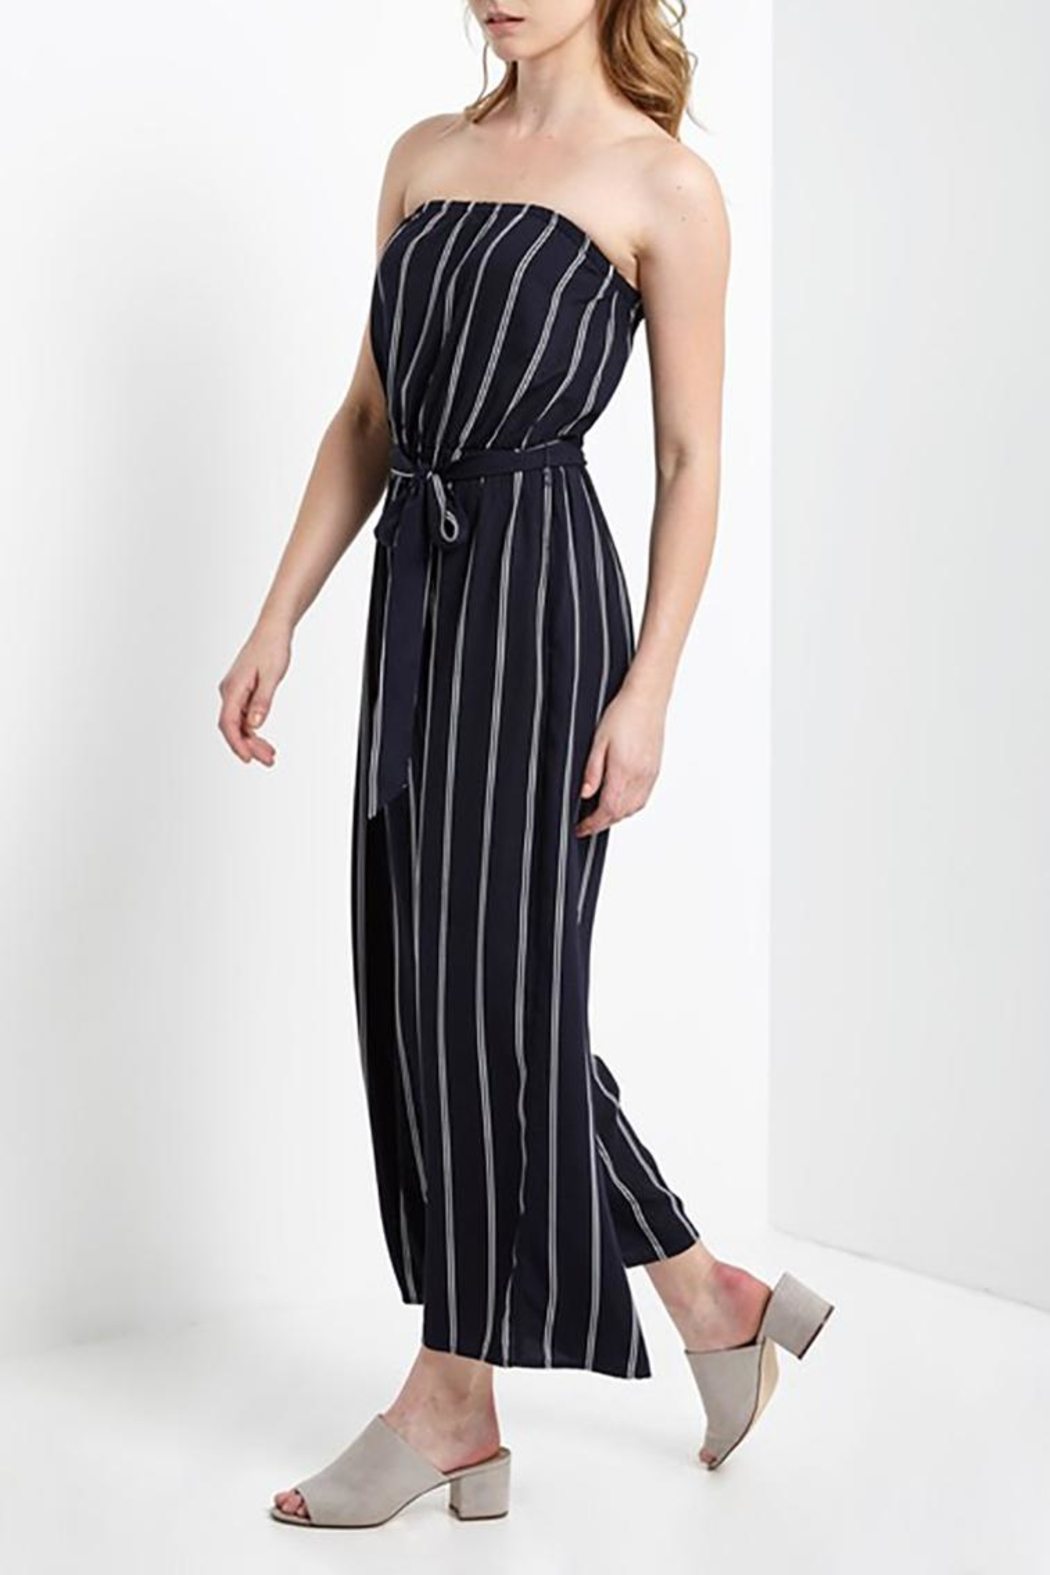 Mai Tai Strapless Striped Jumpsuit - Front Full Image